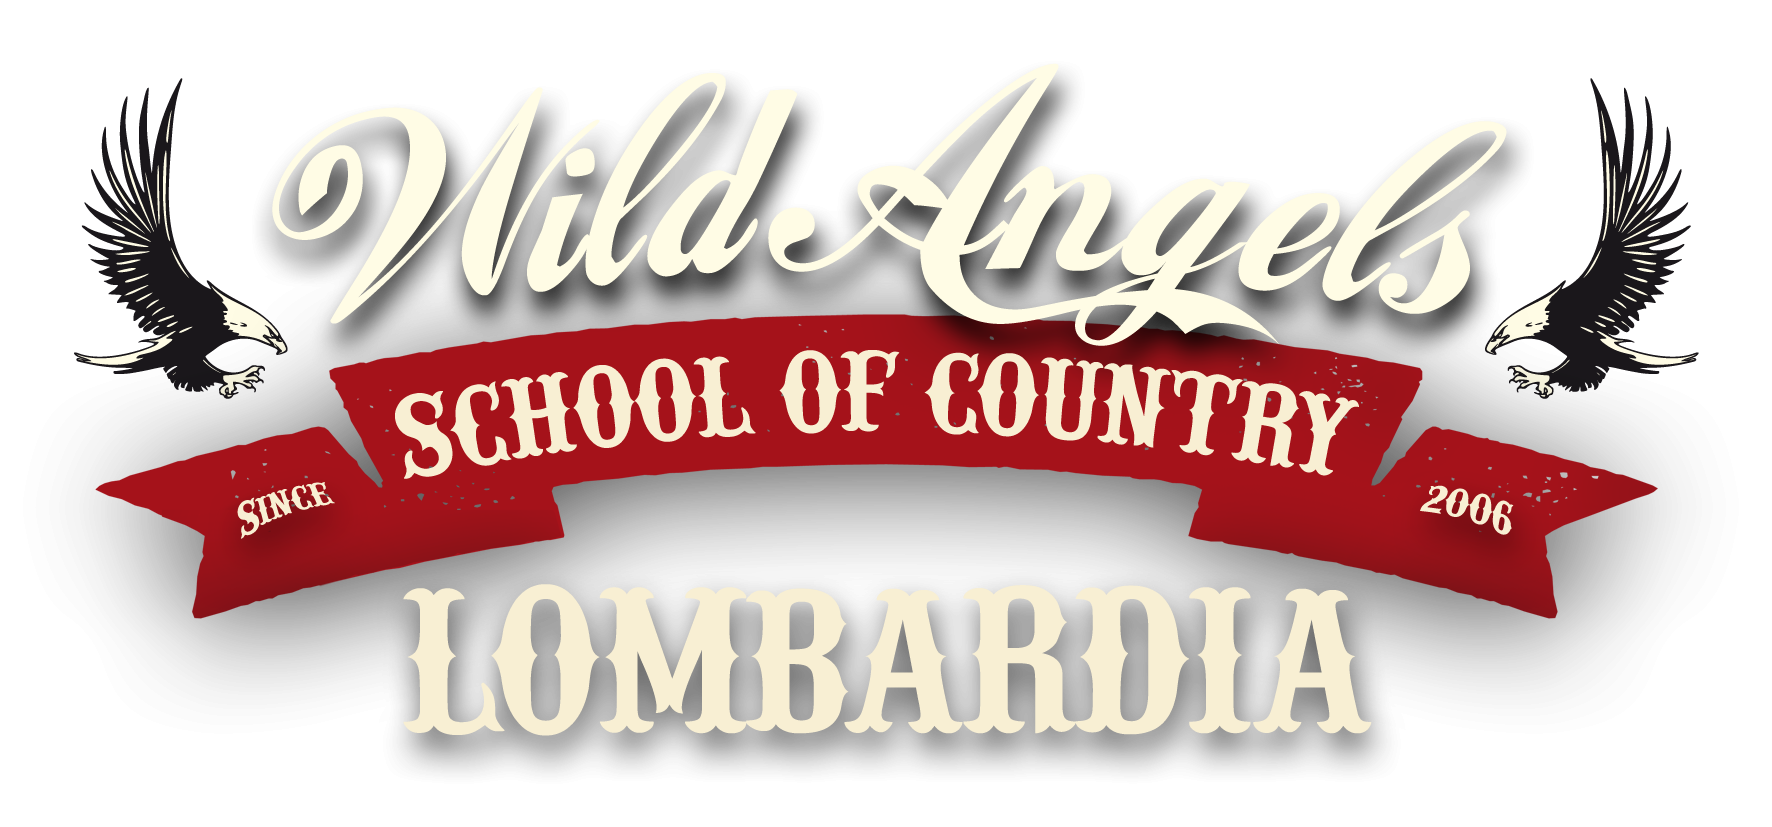 Wild Angels Scuola Country Lombardia